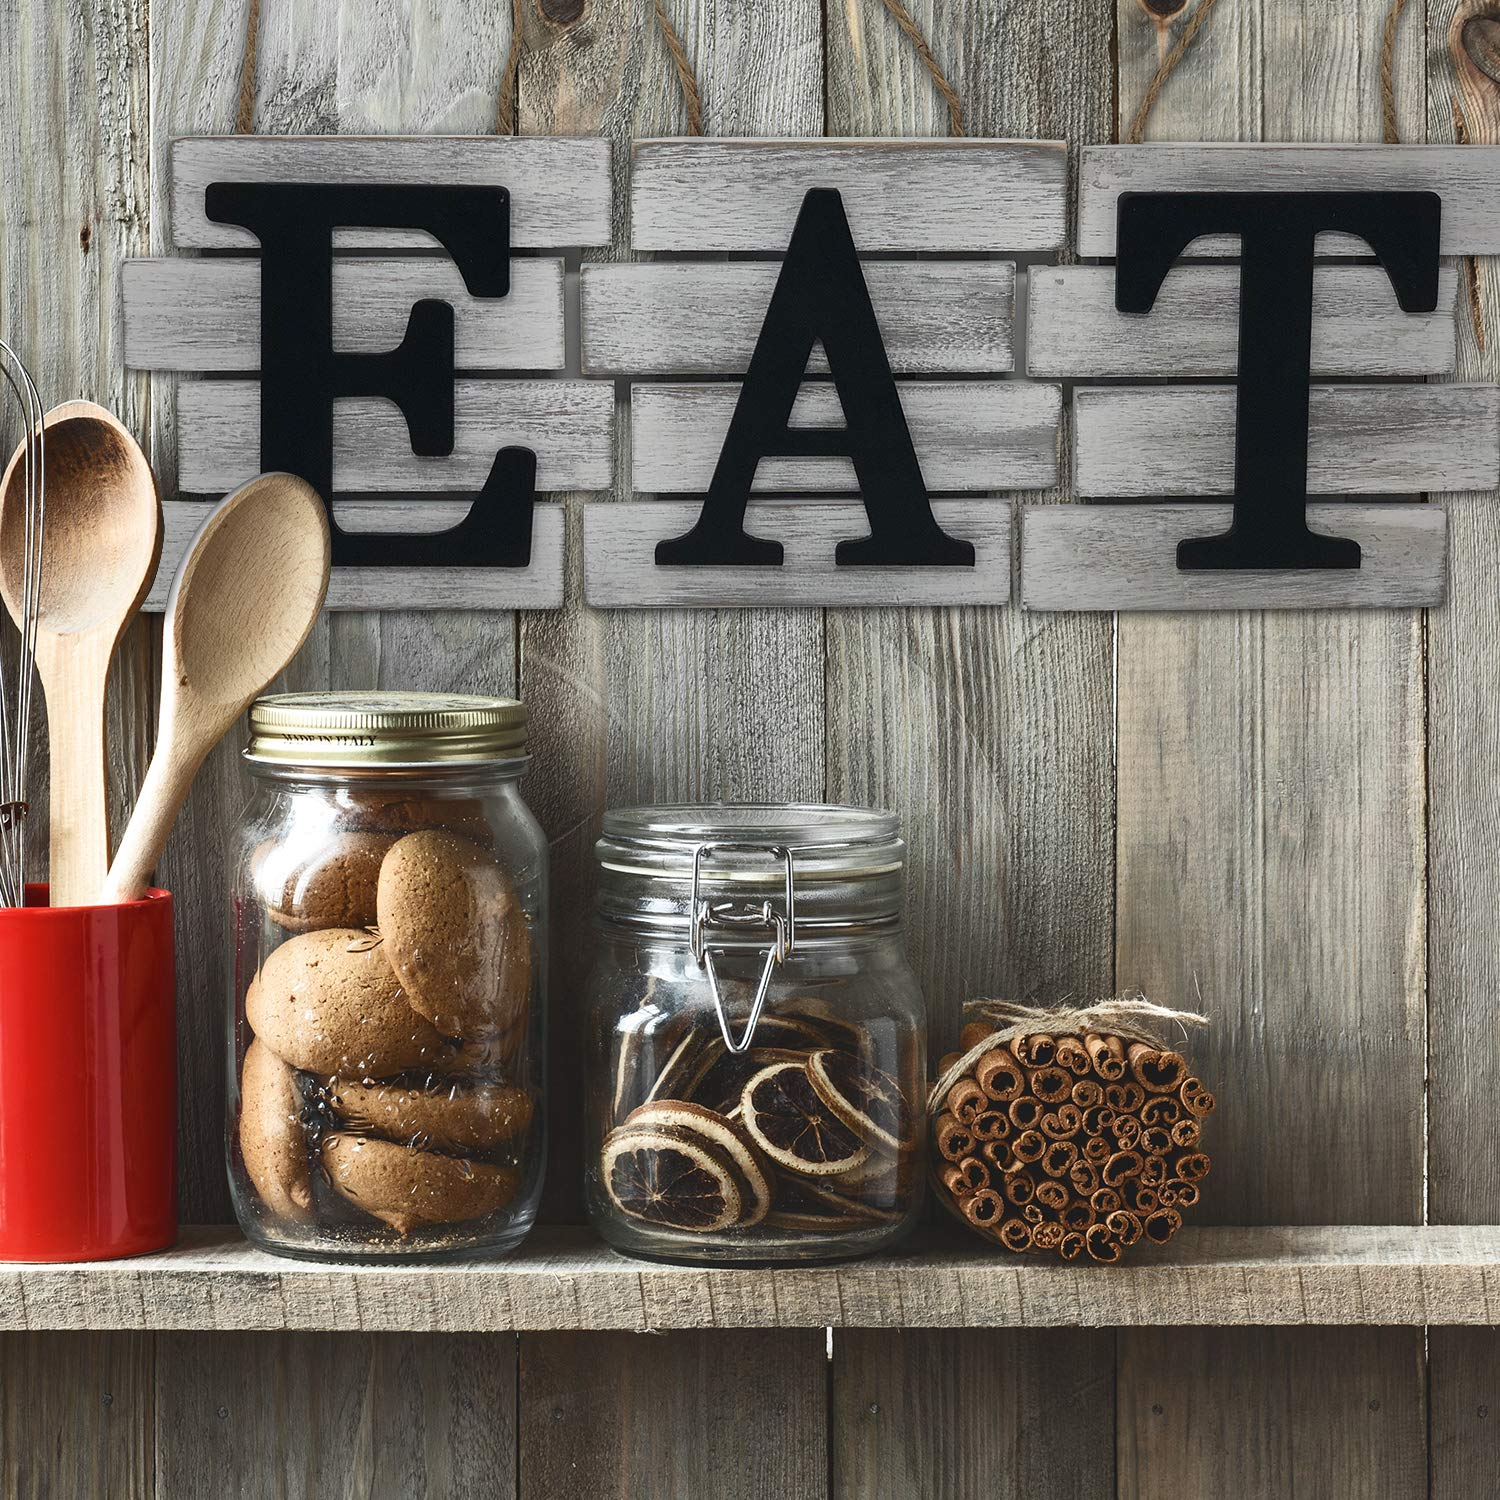 EAT Decorative Wall Art Sign